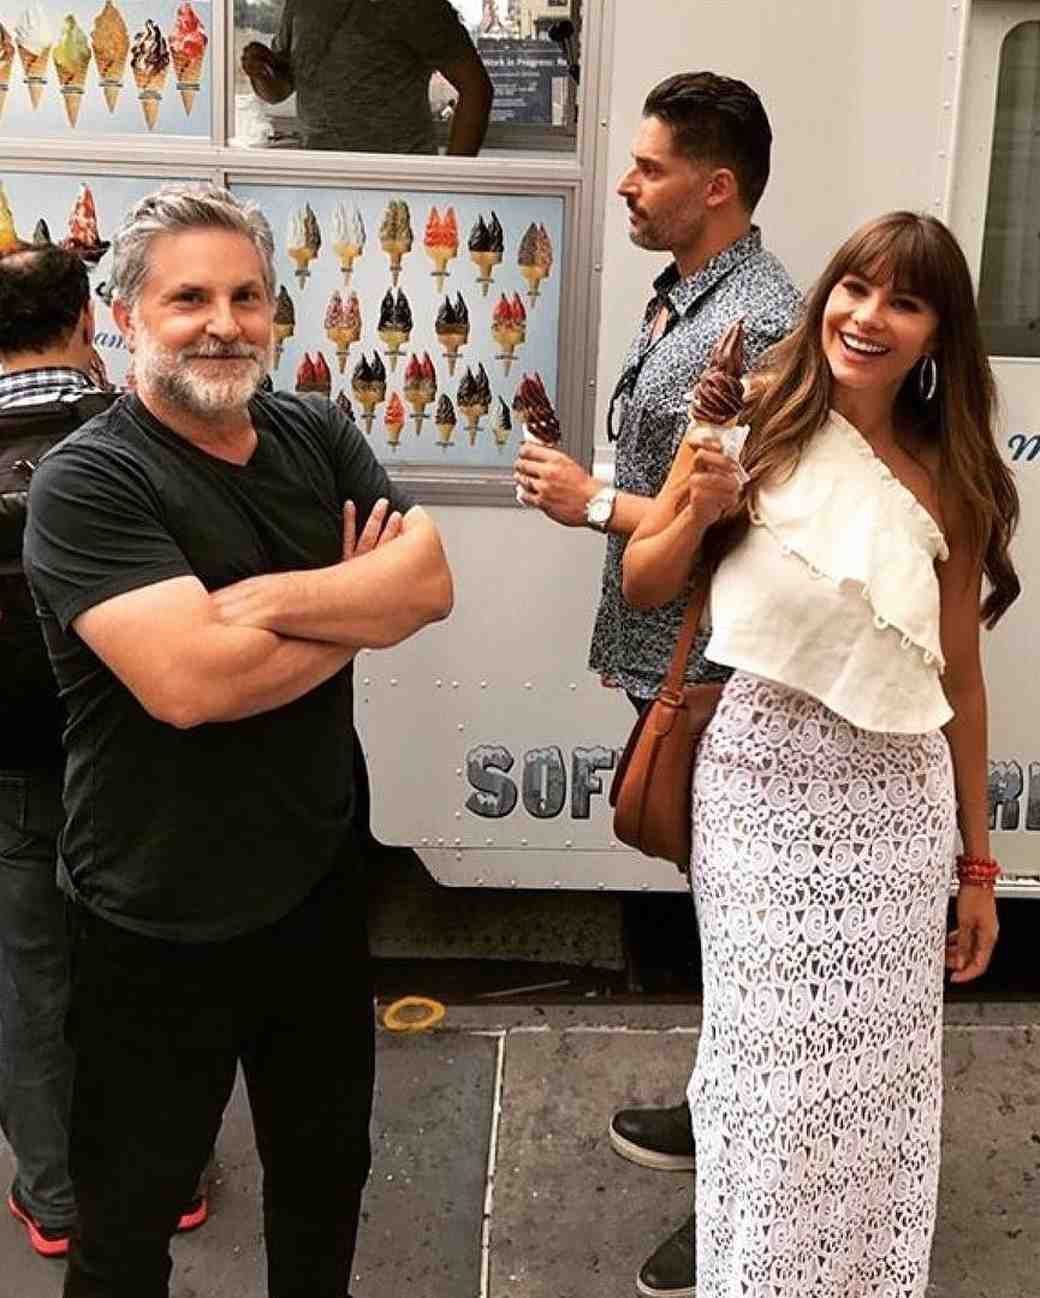 Sofia Vergara and Joe Manganiello getting ice cream